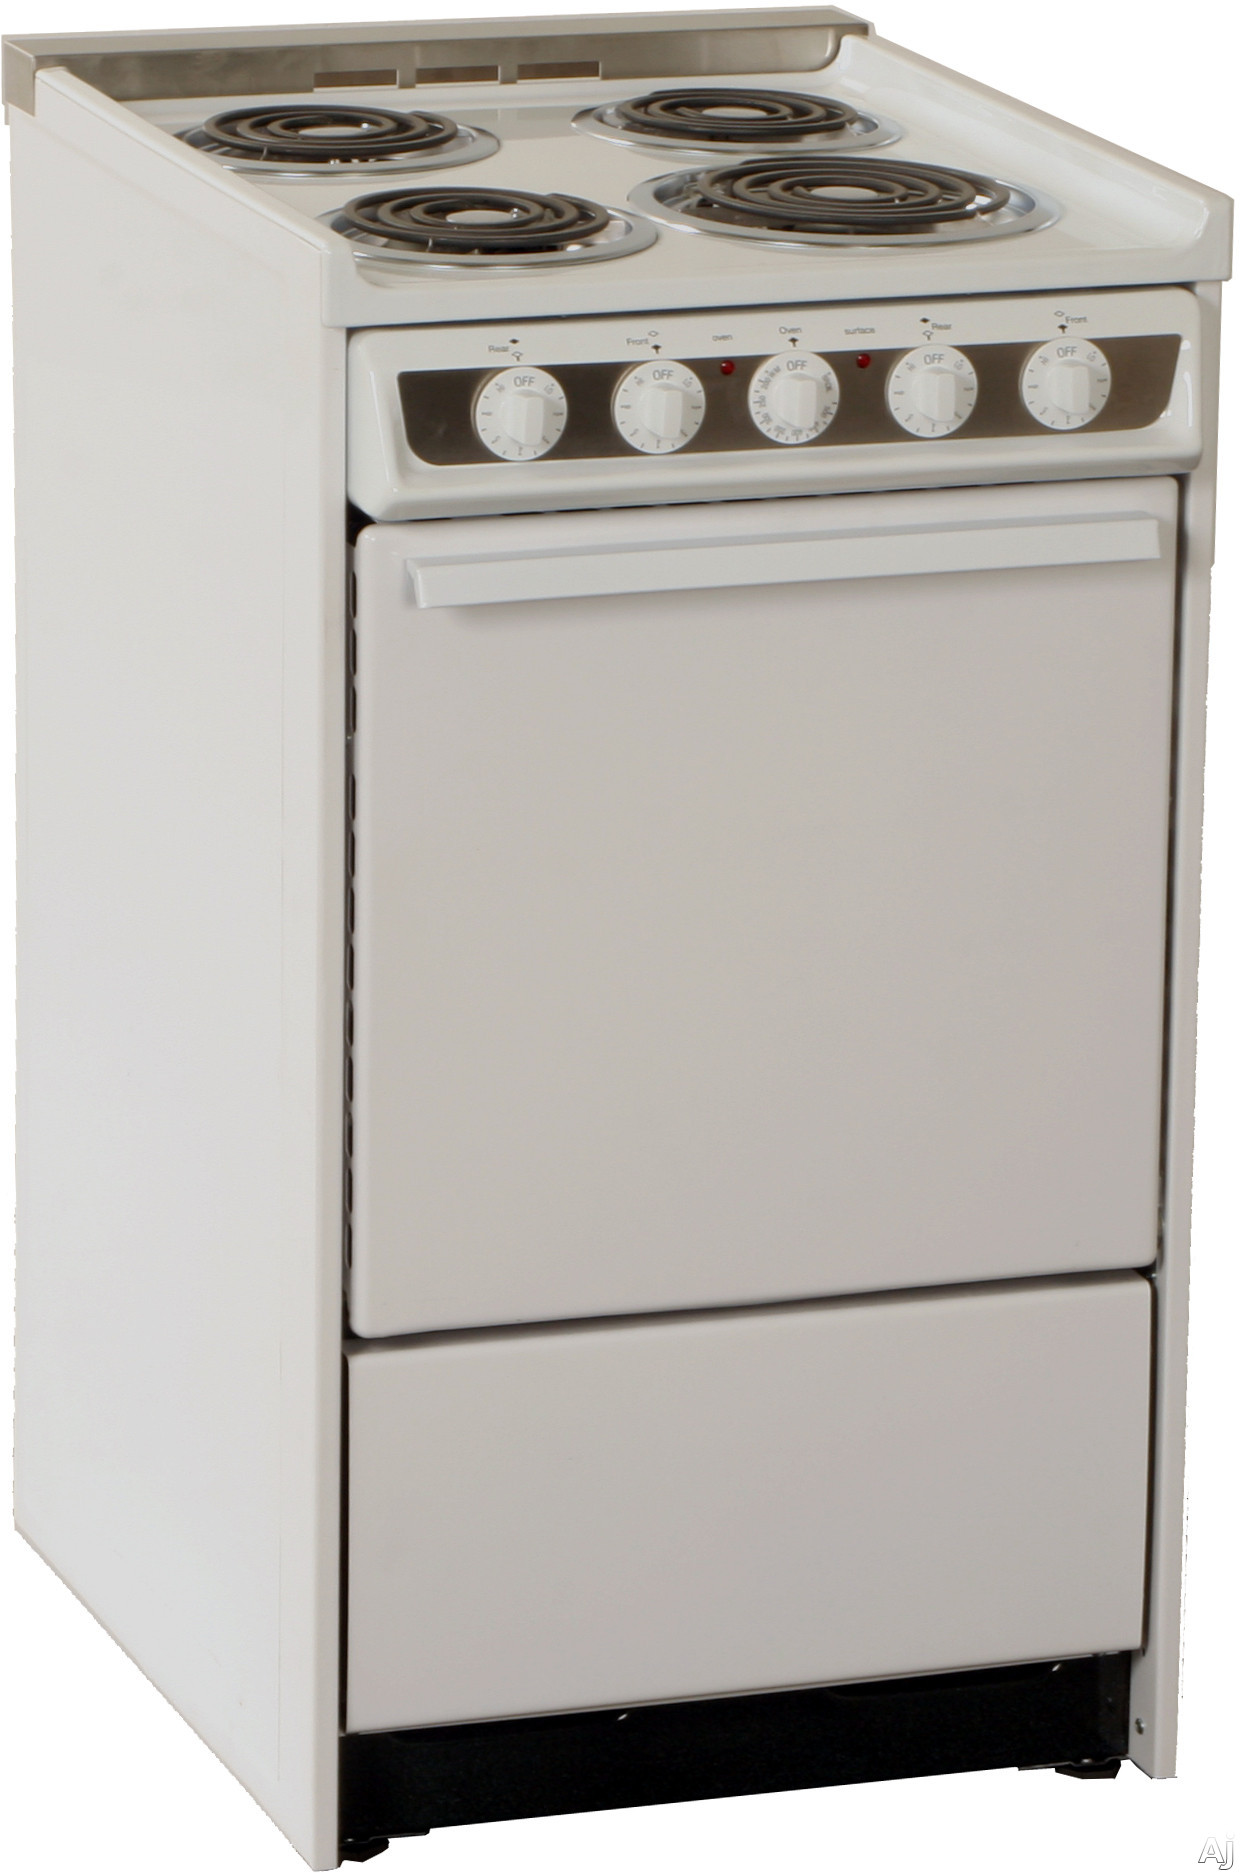 "Summit Professional Series WEM115 20"" Slide-In Electric Range with 2.46 cu. ft. Manual Clean Oven, U.S. & Canada WEM115"